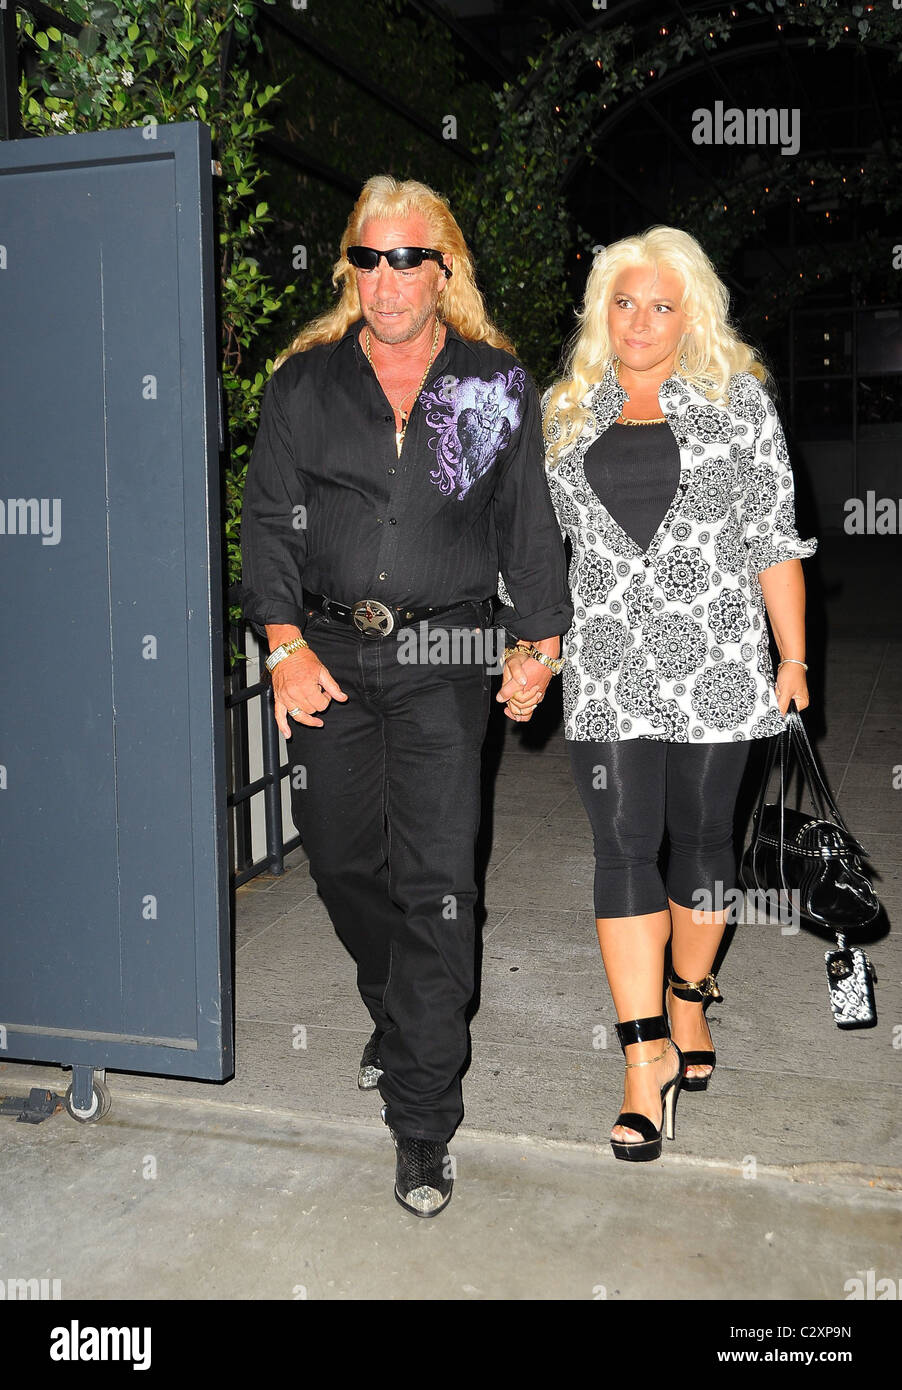 Before And After Dog The Bounty Hunter S Wife